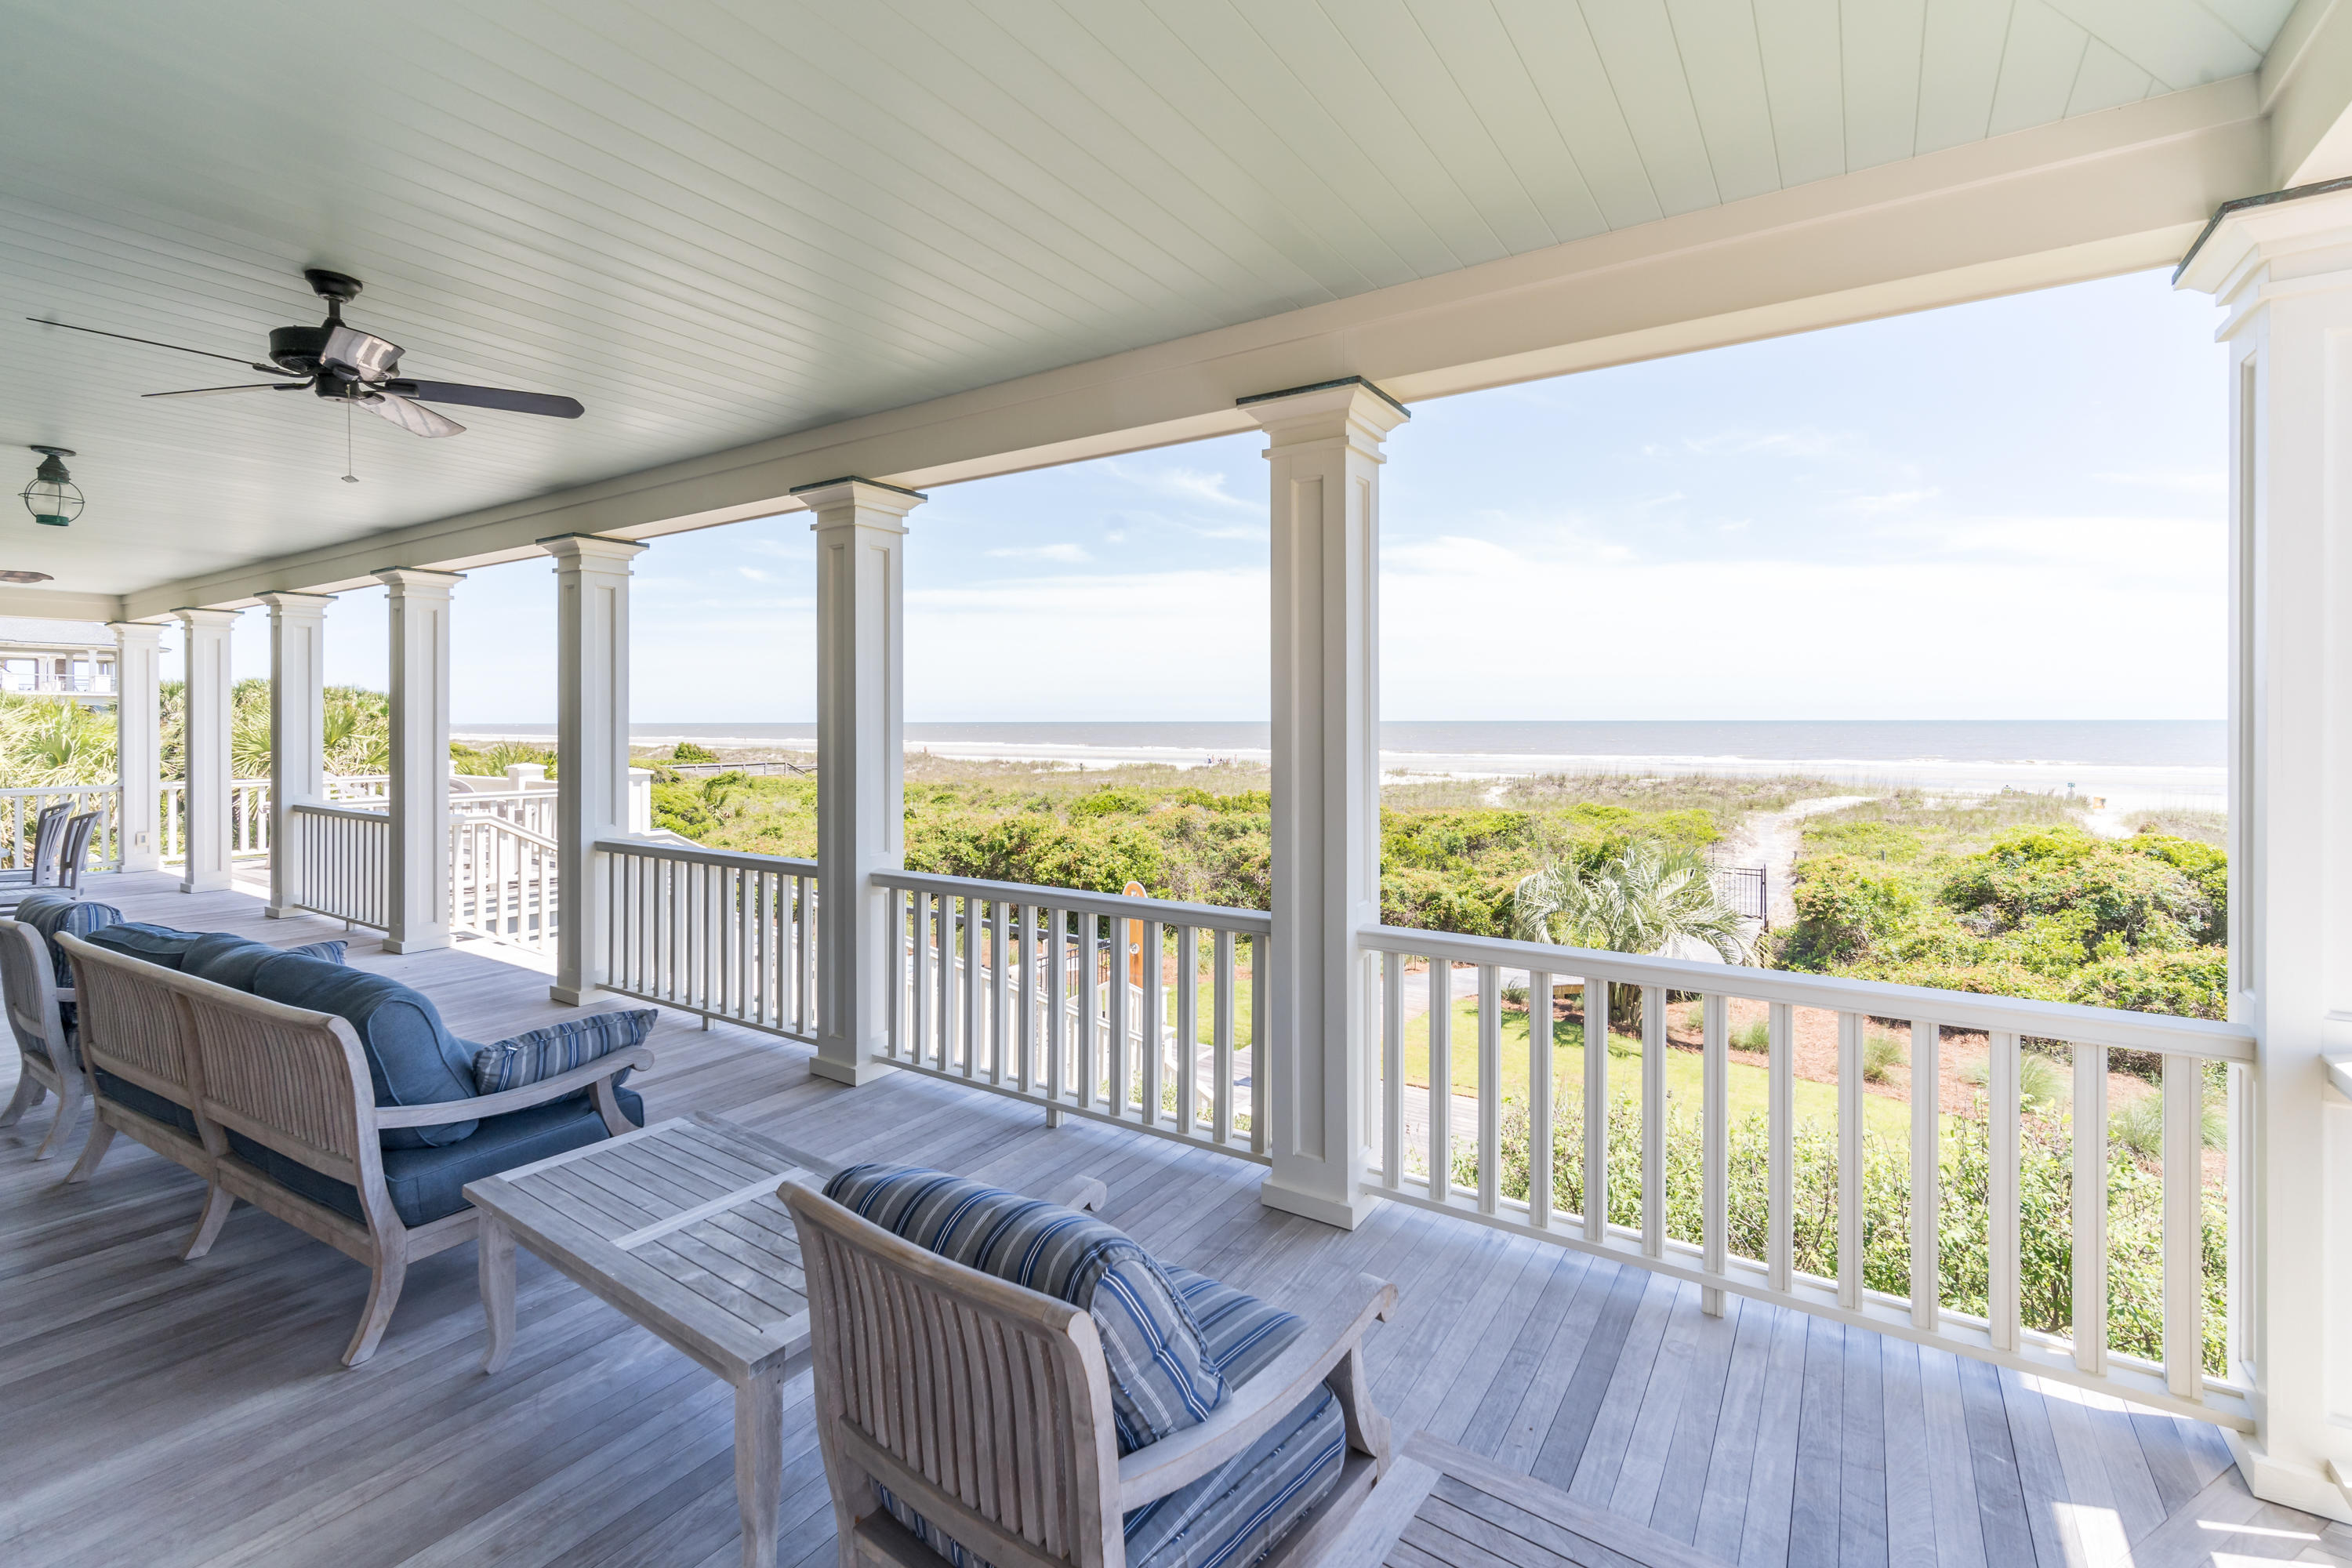 Isle of Palms Homes For Sale - 2 45th, Isle of Palms, SC - 6